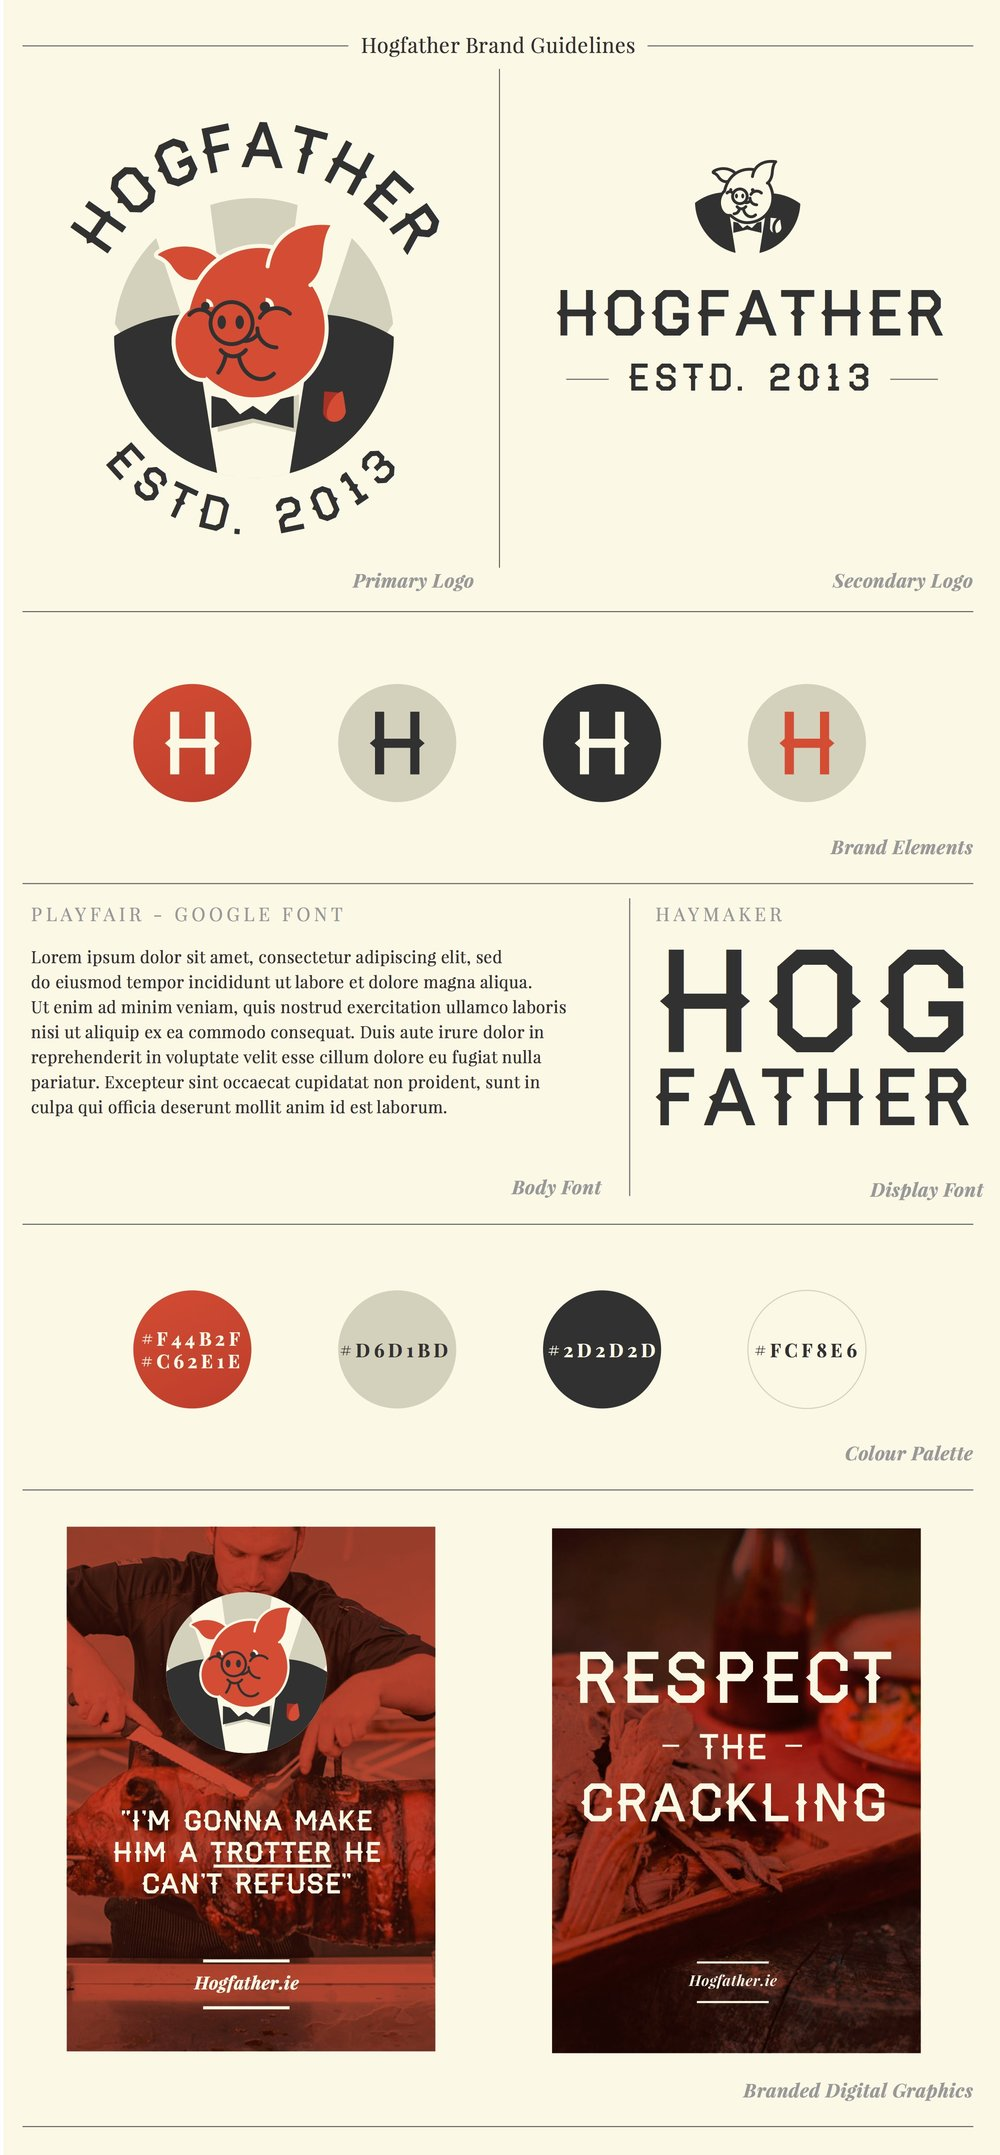 Hogfather_Brand_Guidelines.jpg